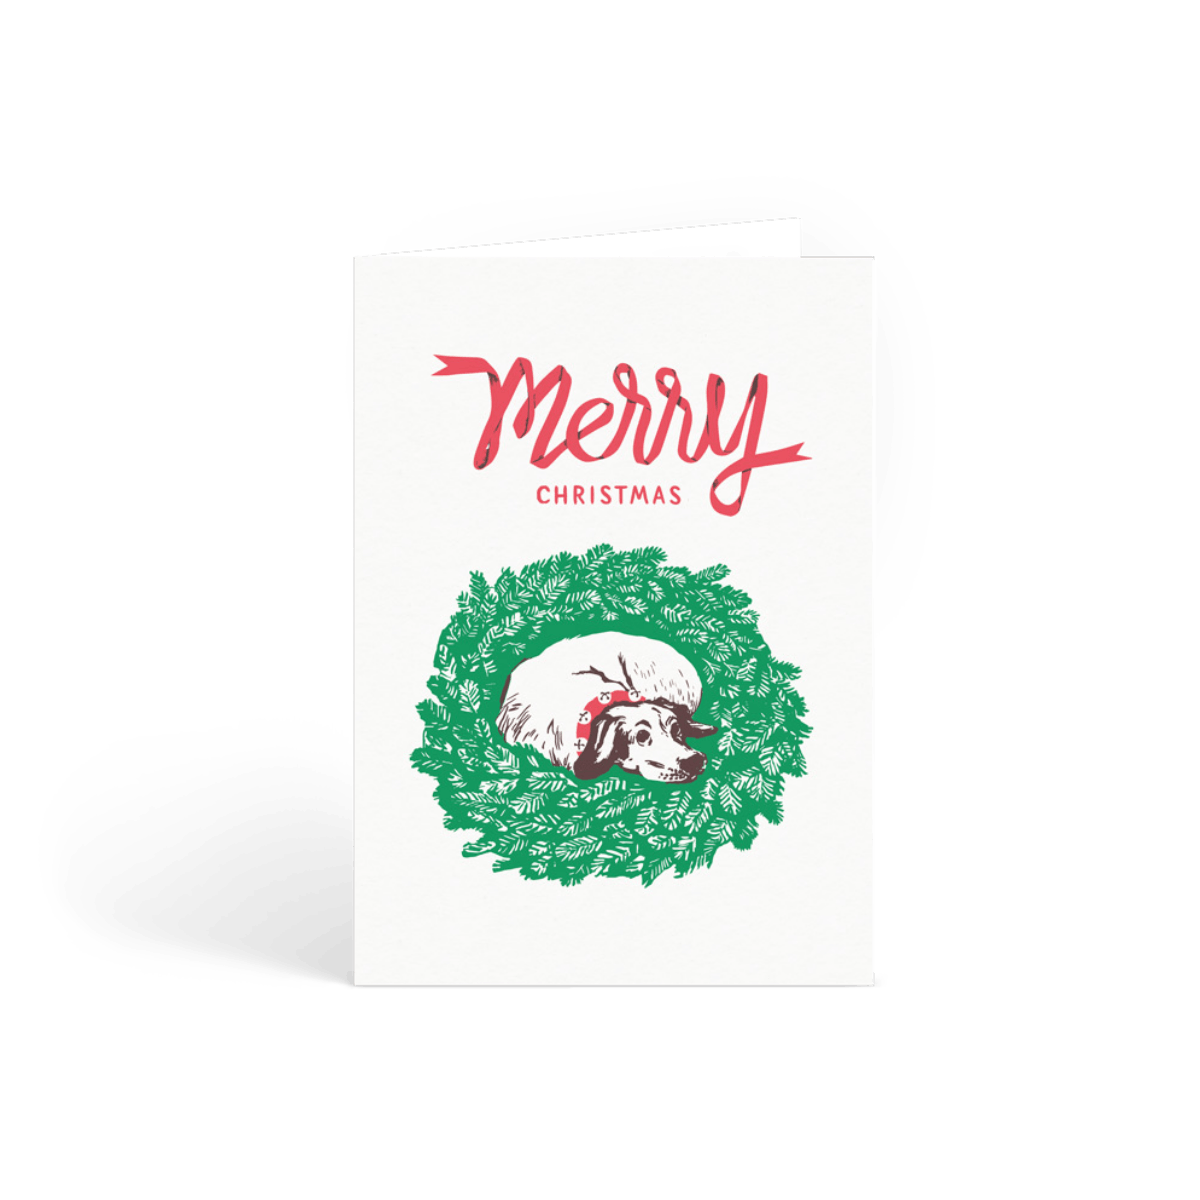 Https%3a%2f%2fwww.papier.com%2fproduct image%2f41519%2f2%2fmerry christmas dog 10586 front 1541422063.png?ixlib=rb 1.1